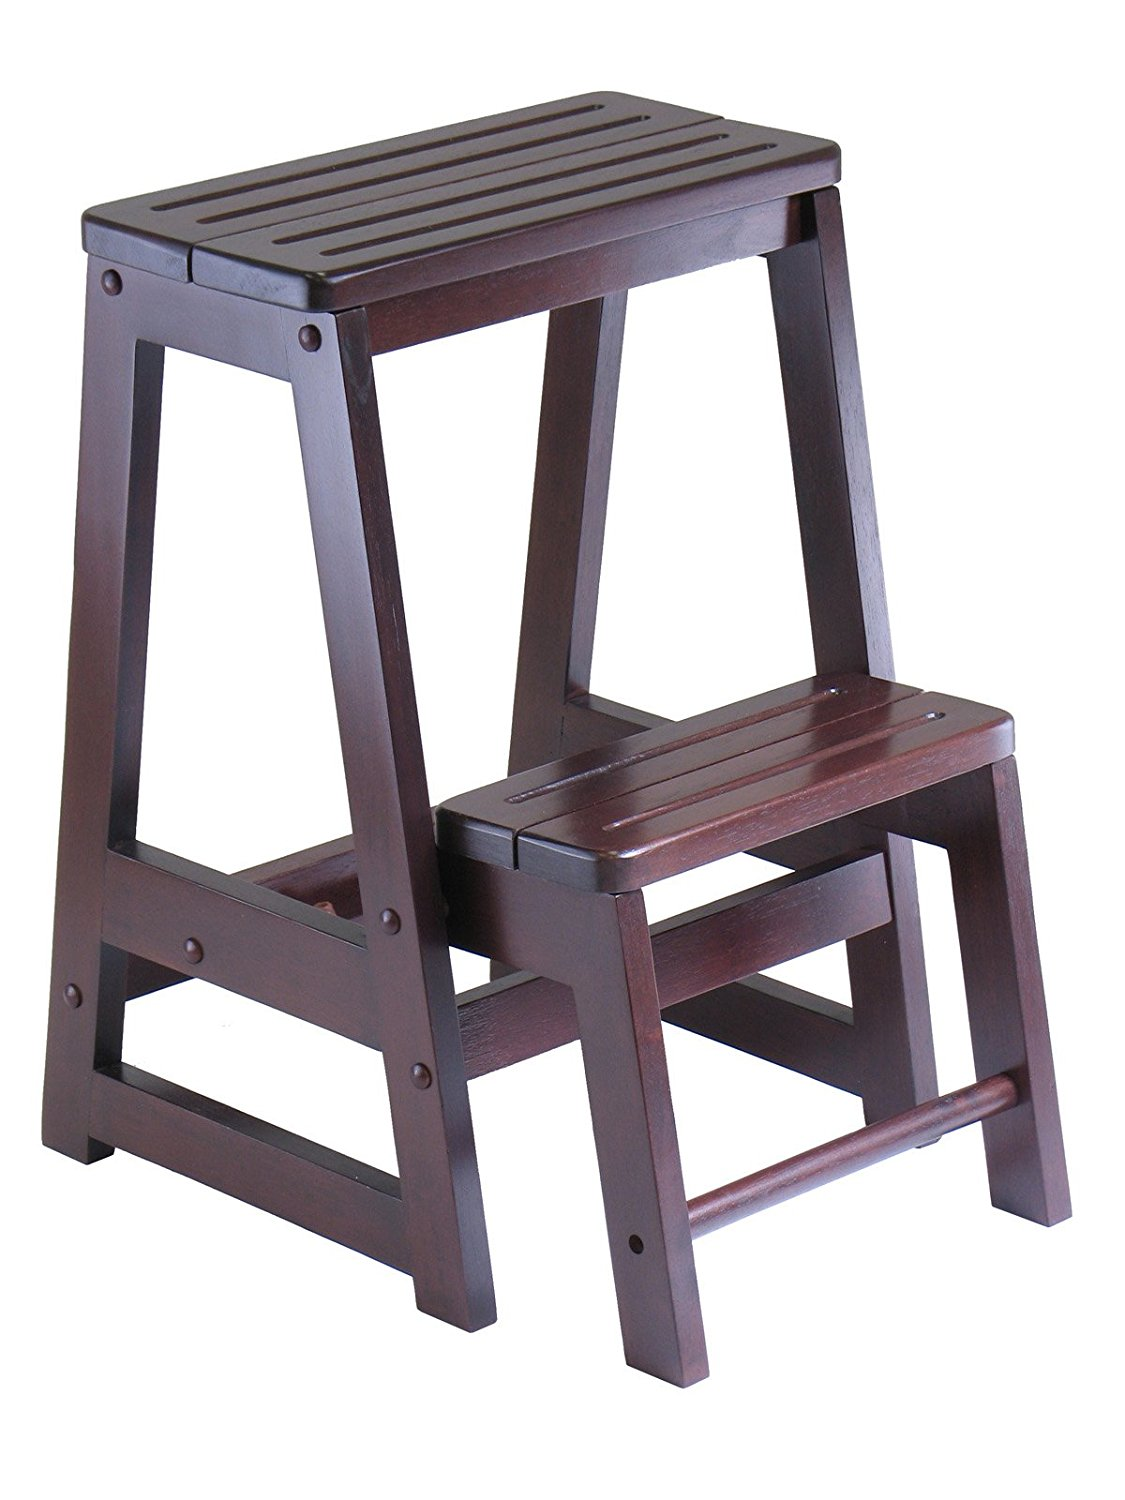 Magnificent Details About Winsome Wood Step Stool Antique Walnut New Free Shipping Short Links Chair Design For Home Short Linksinfo